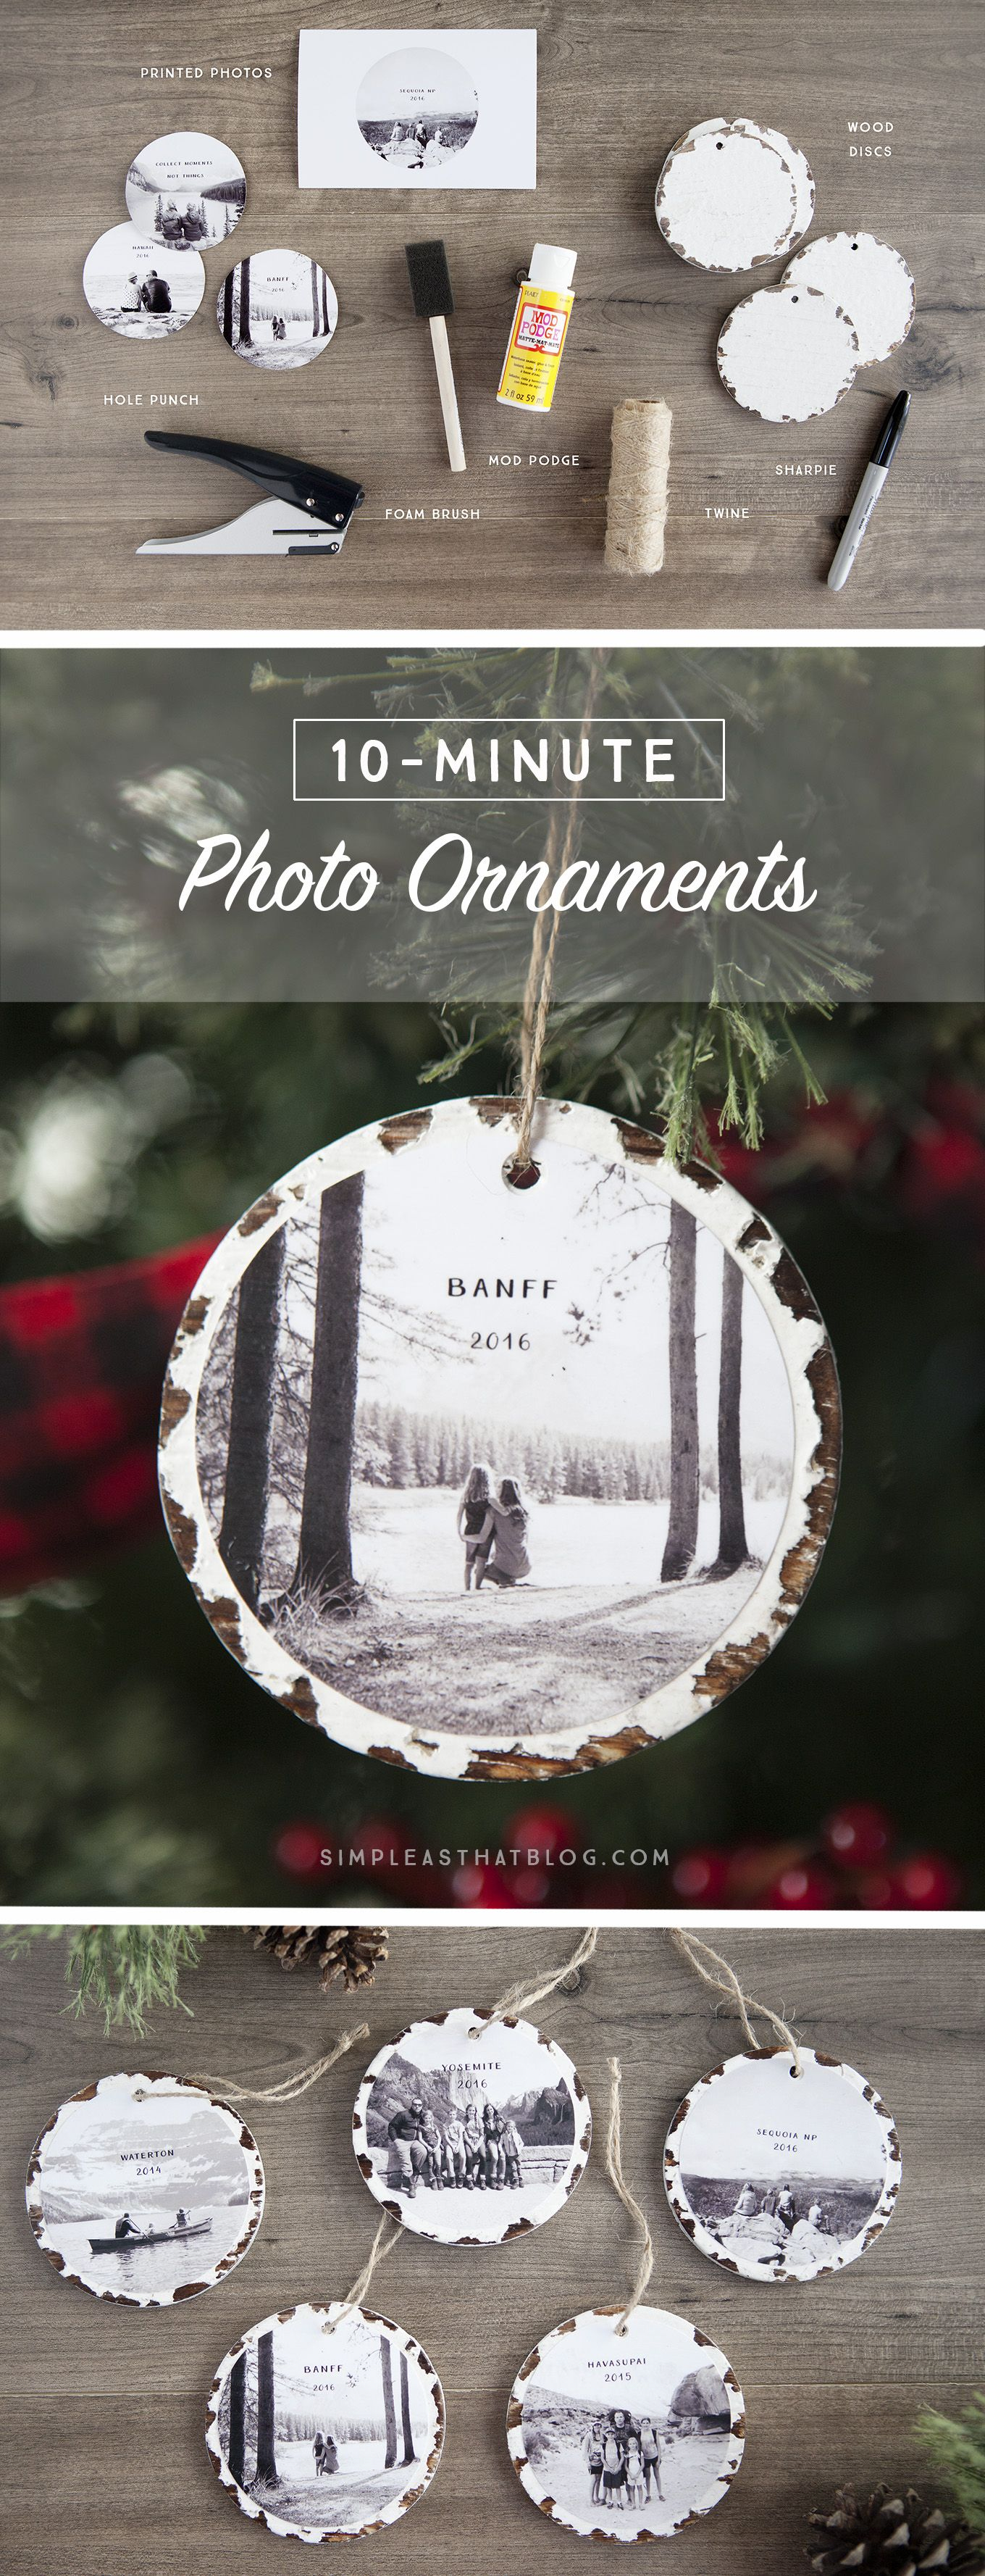 4b42889fbd68cd7b3e8cc58a368039cdjpg 10 Minute Photo Keepsake Ornaments